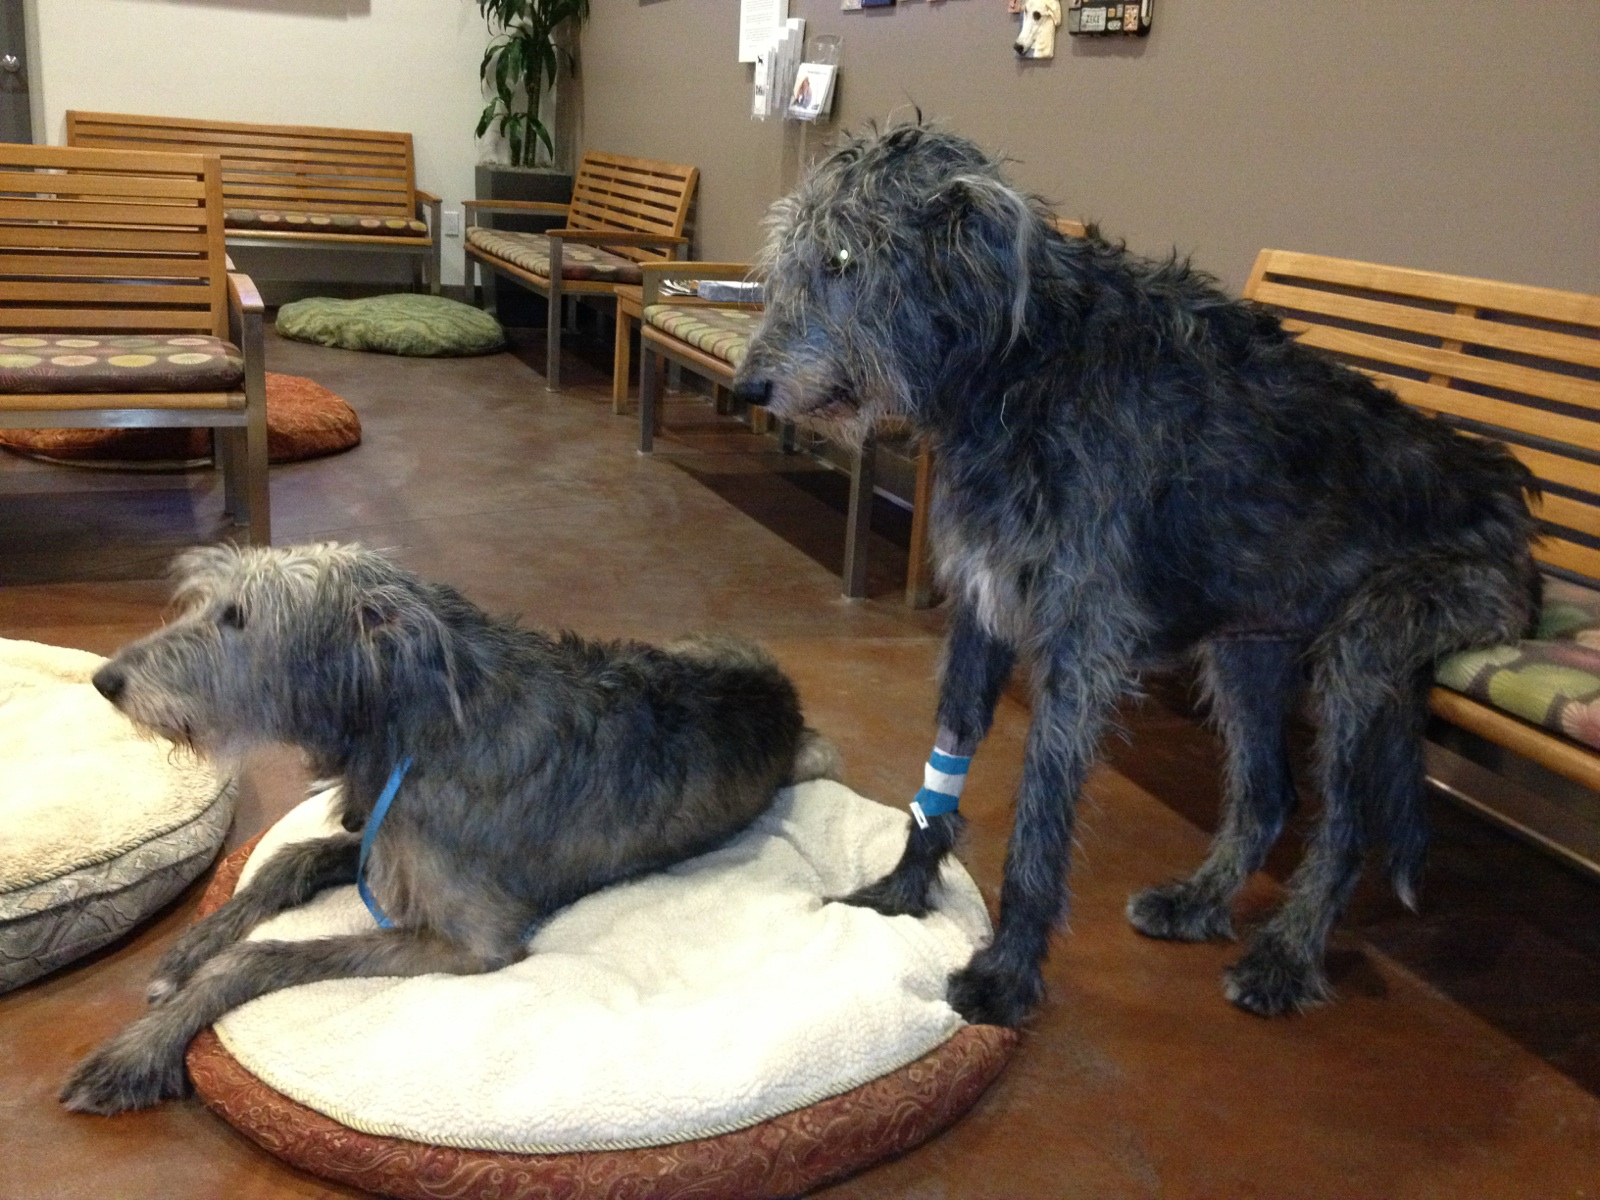 Here are the lads in a veterinary hospital, Angus caught pneumonia in the last year of his life and required a big medical intervention. And a big chair to sit on.